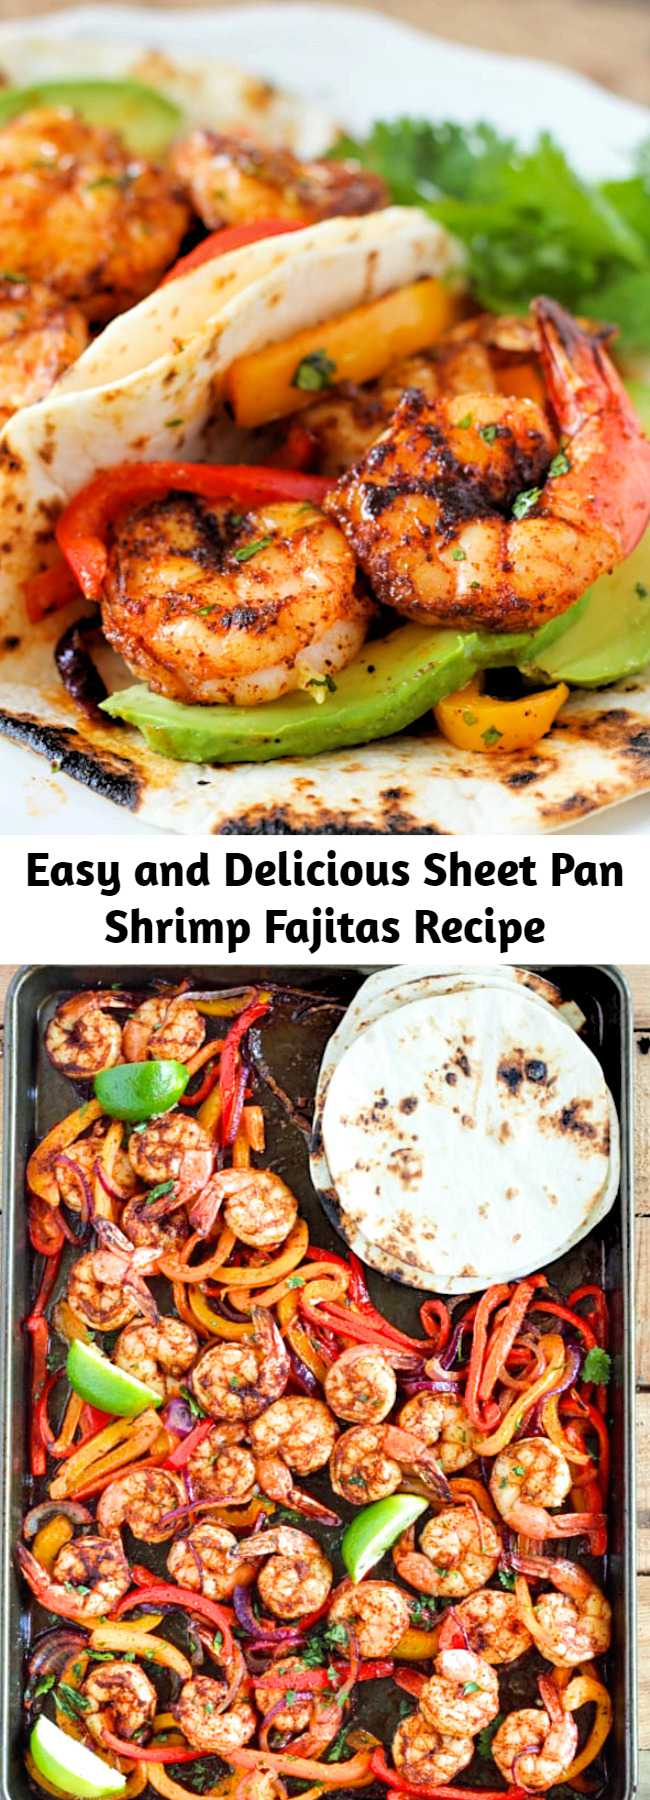 Easy and Delicious Sheet Pan Shrimp Fajitas Recipe - This shrimp fajita recipe is seriously so easy and delicious! All you have to do is scoop the juicy shrimp, tender bell pepper and onions into a soft warm tortilla for a super fast and easy weeknight dinner!